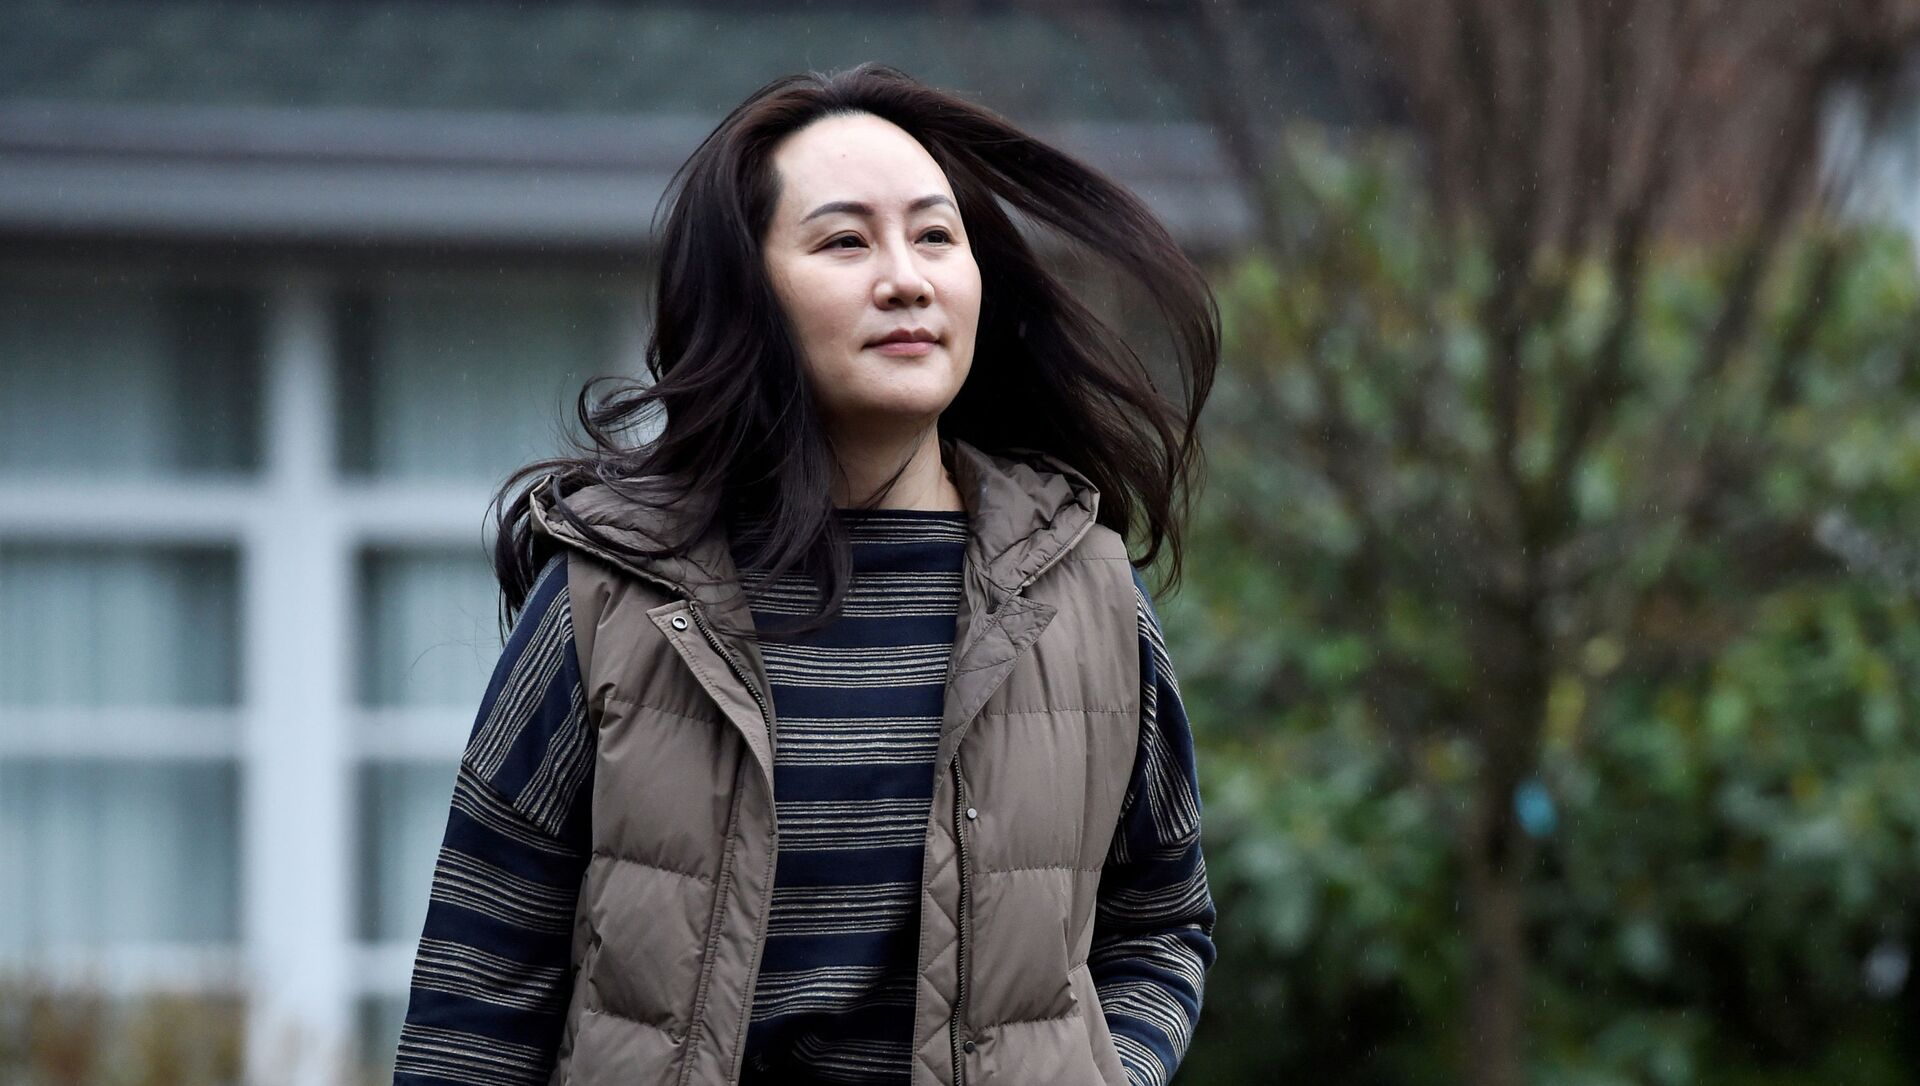 Huawei Technologies Chief Financial Officer Meng Wanzhou leaves her home to attend a court hearing in Vancouver, British Columbia, Canada December 7, 2020. - Sputnik International, 1920, 14.06.2021